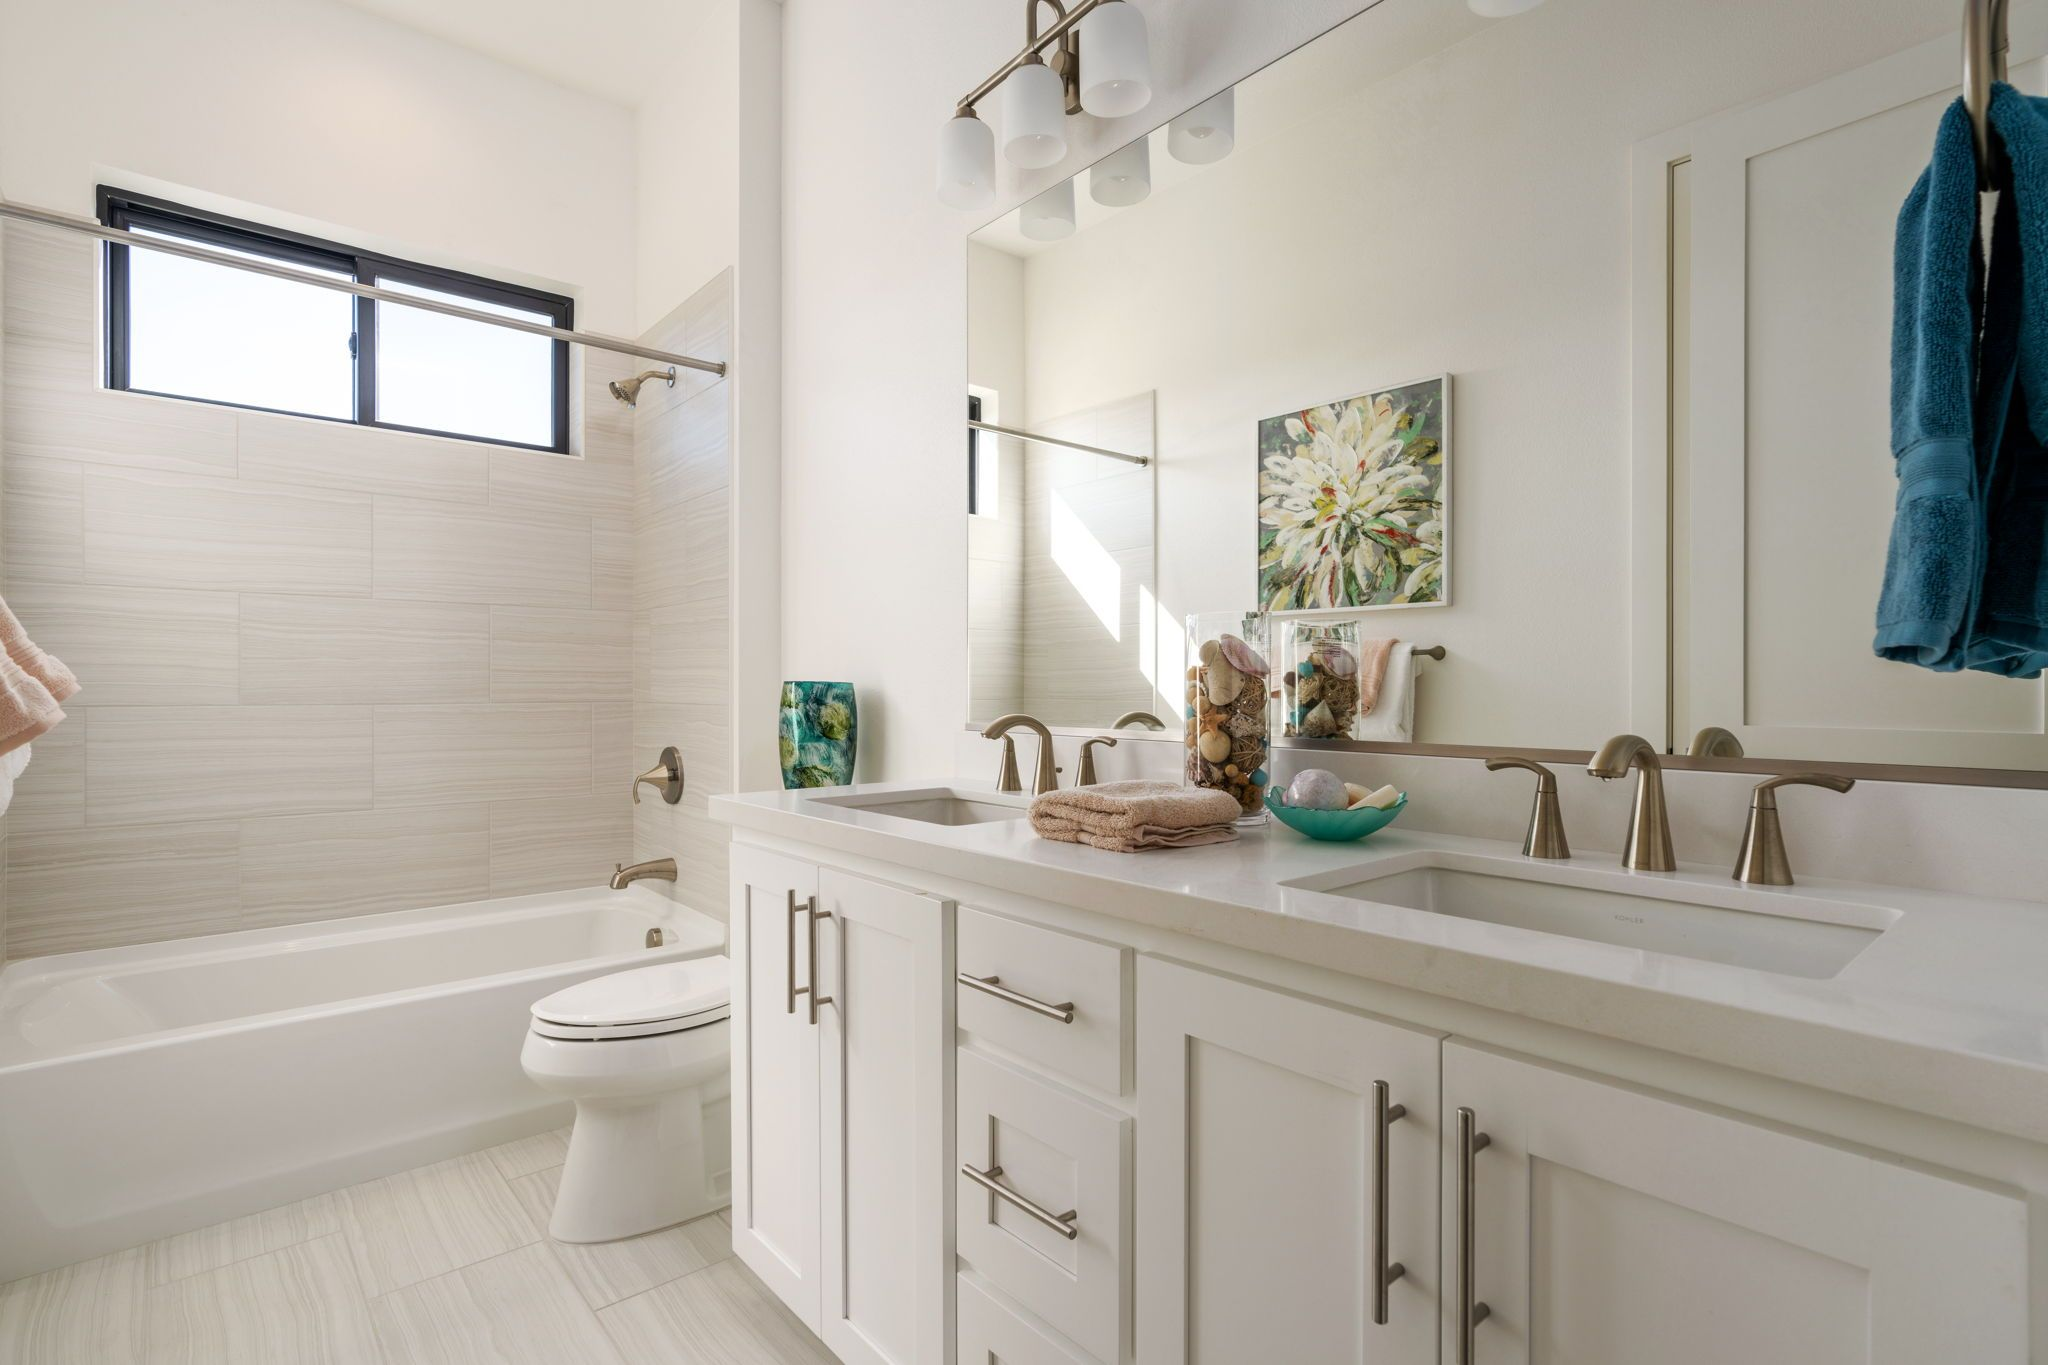 Bathroom featured in the Plan 29X By Christopherson Builders in Santa Rosa, CA